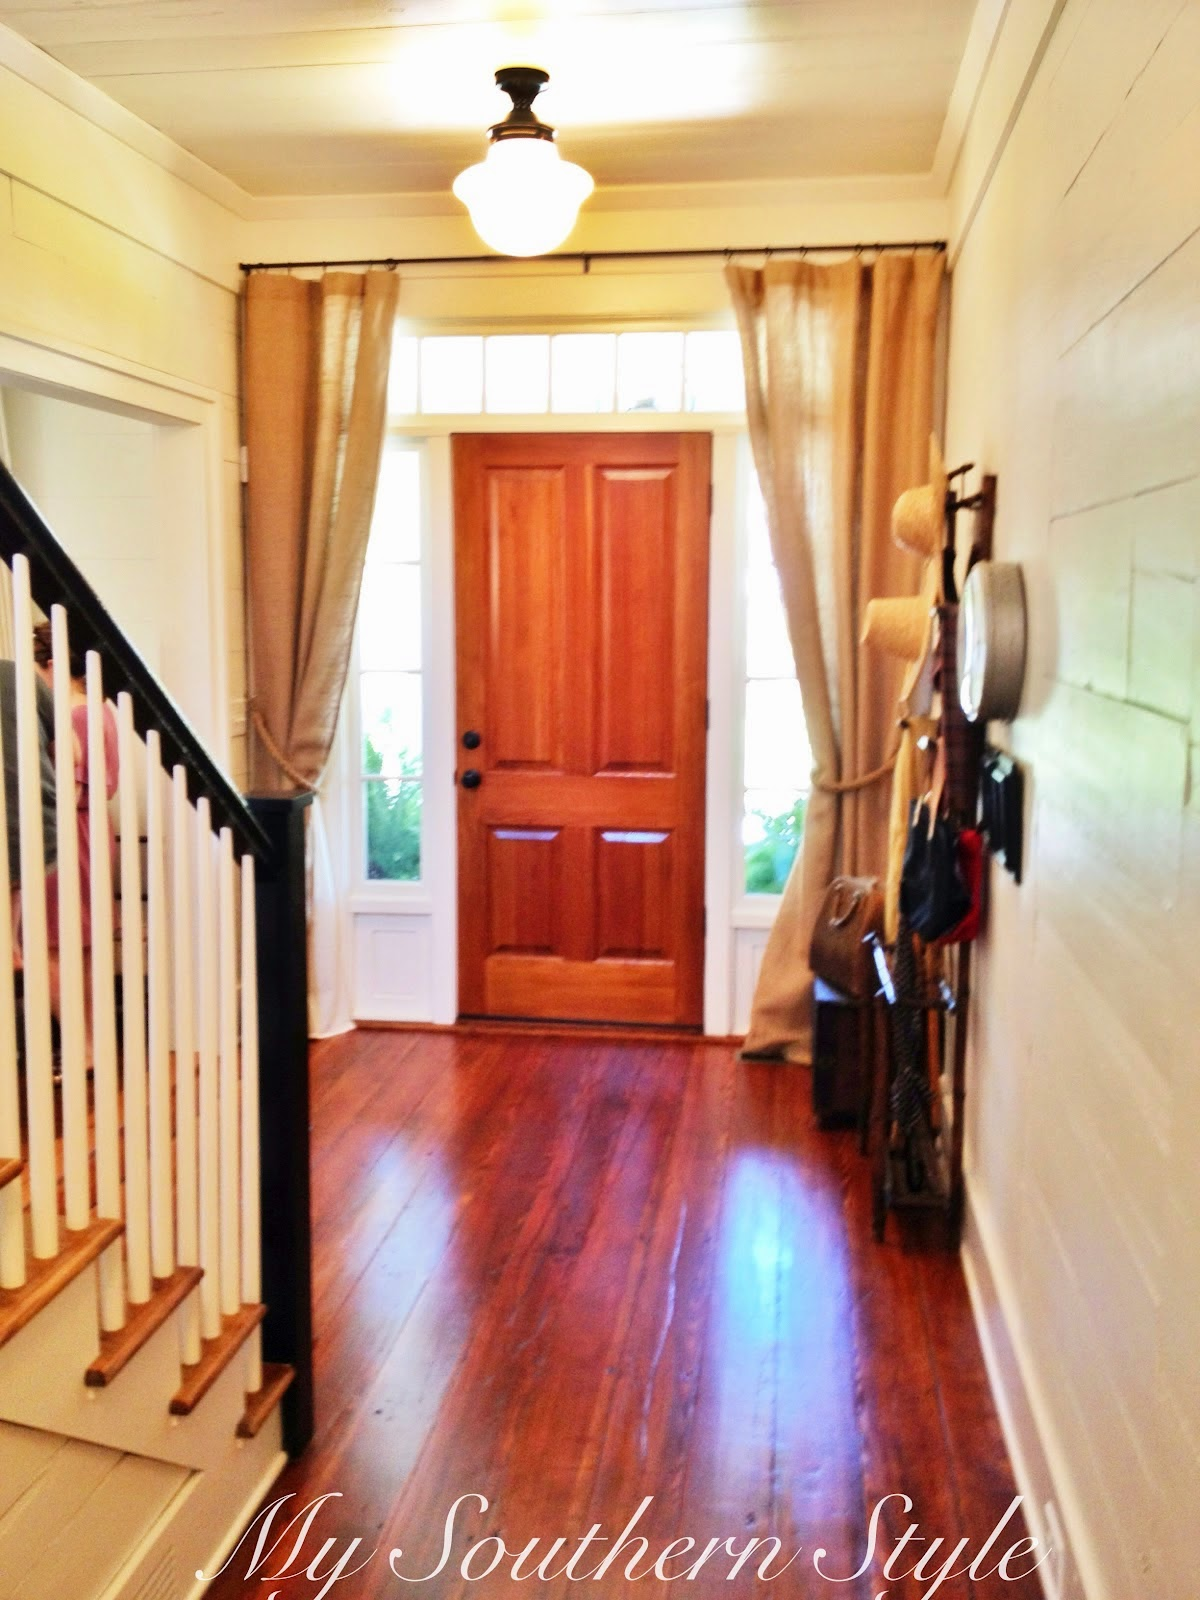 Is A Staircase Facing the Front Door Bad Feng Shui? - The ...